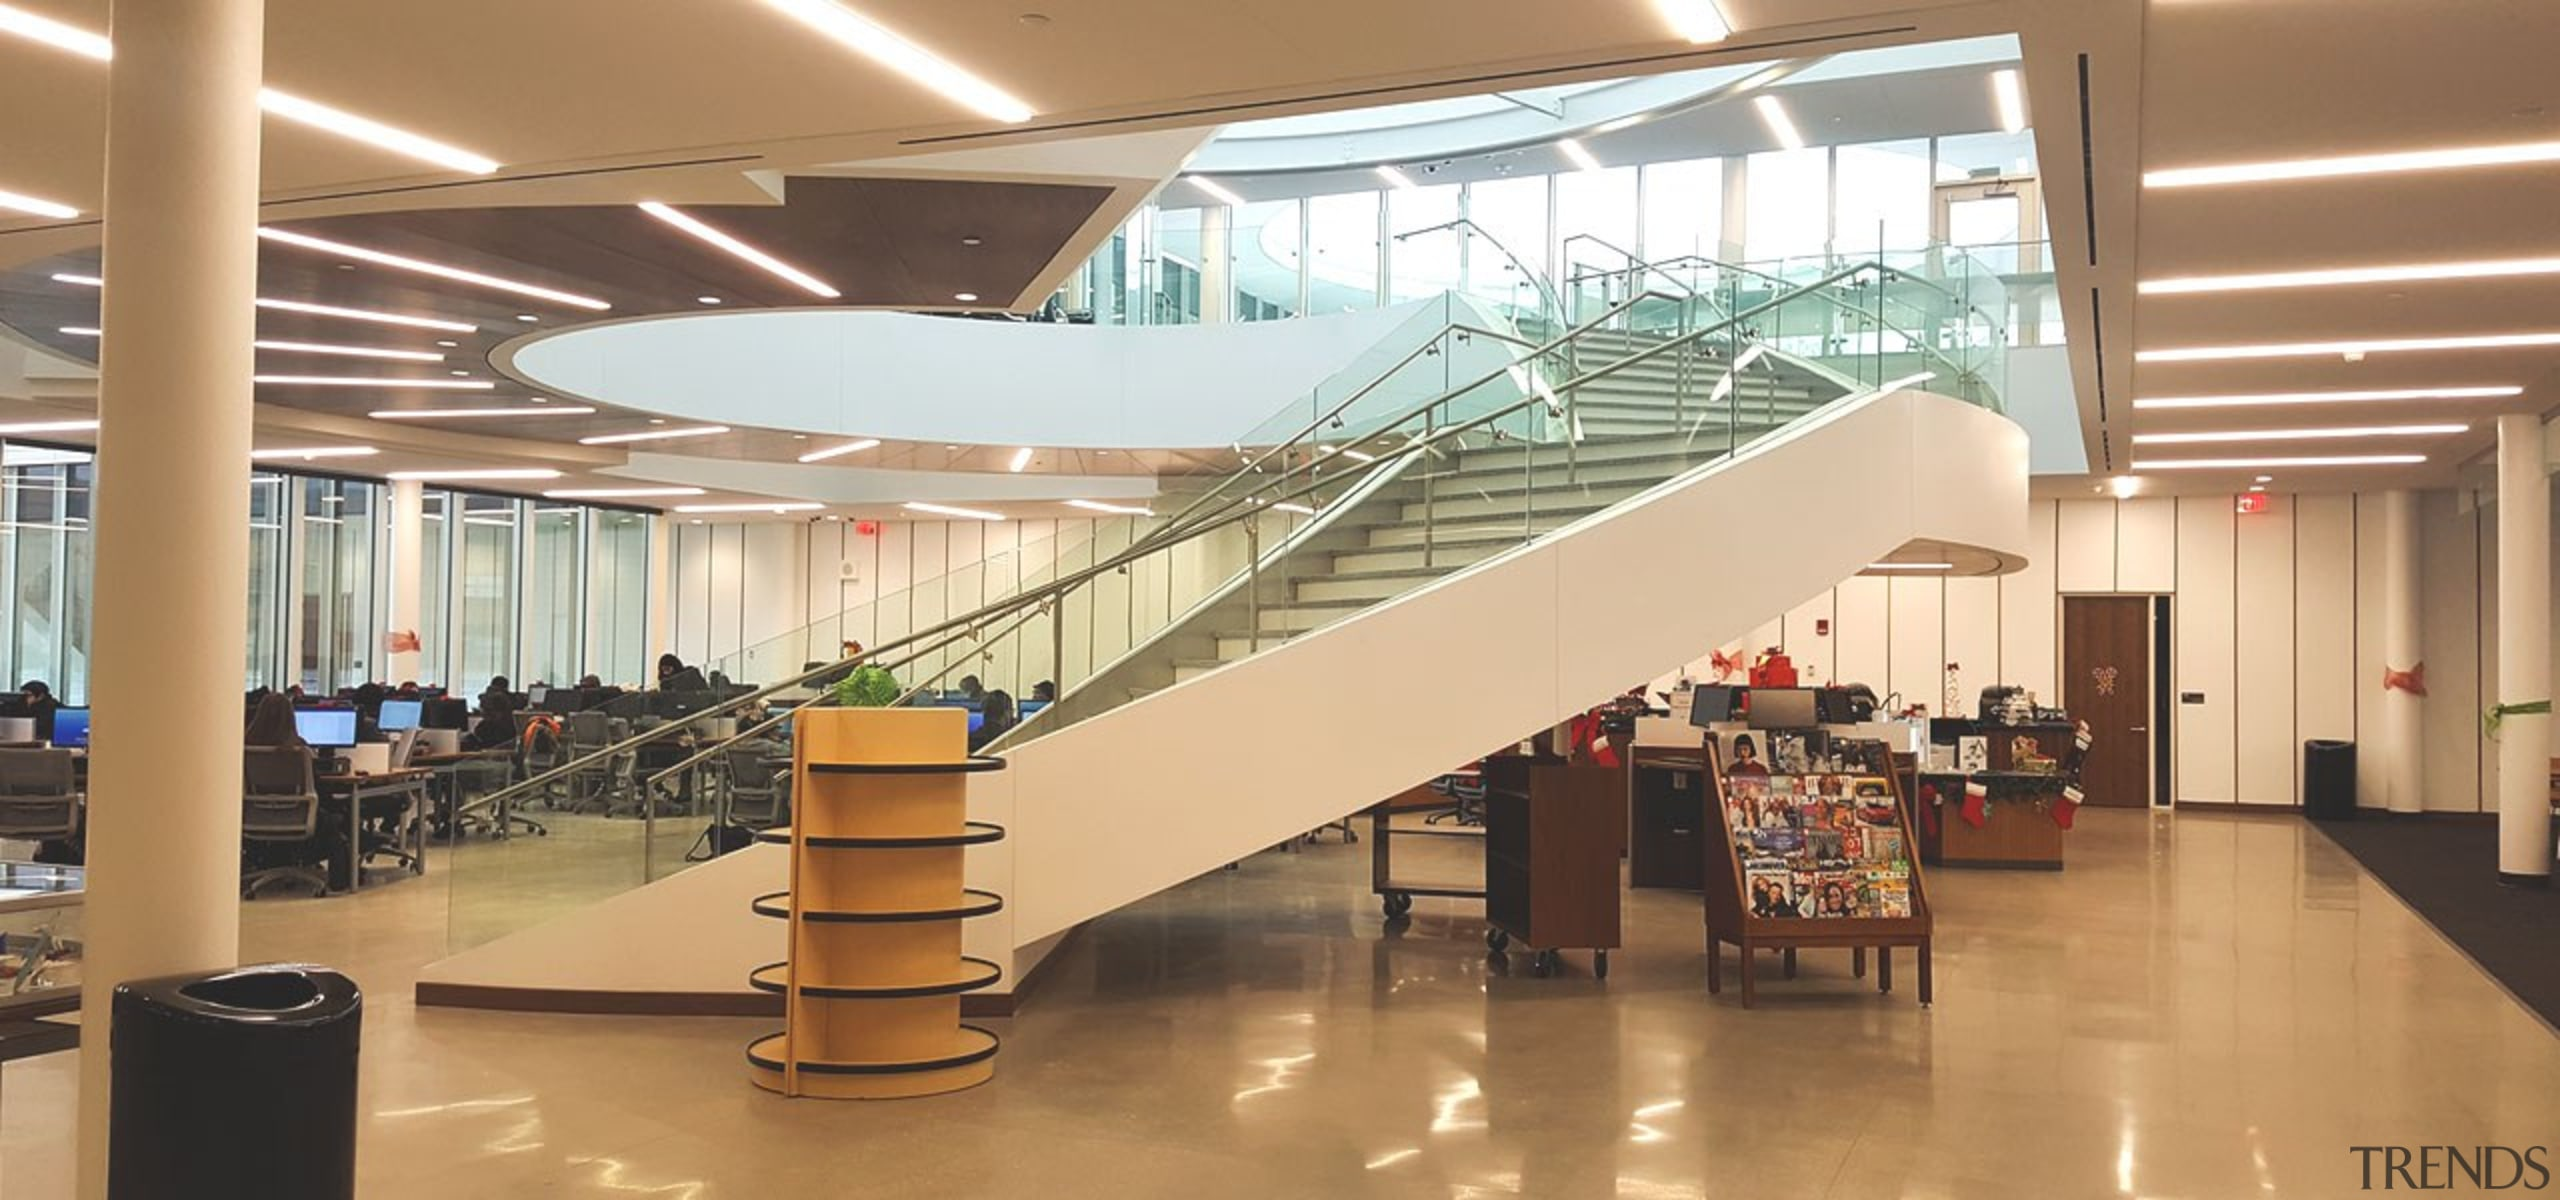 Suffolk County Community College 4 - architecture | architecture, building, glass, handrail, interior design, lobby, shopping mall, stairs, brown, orange